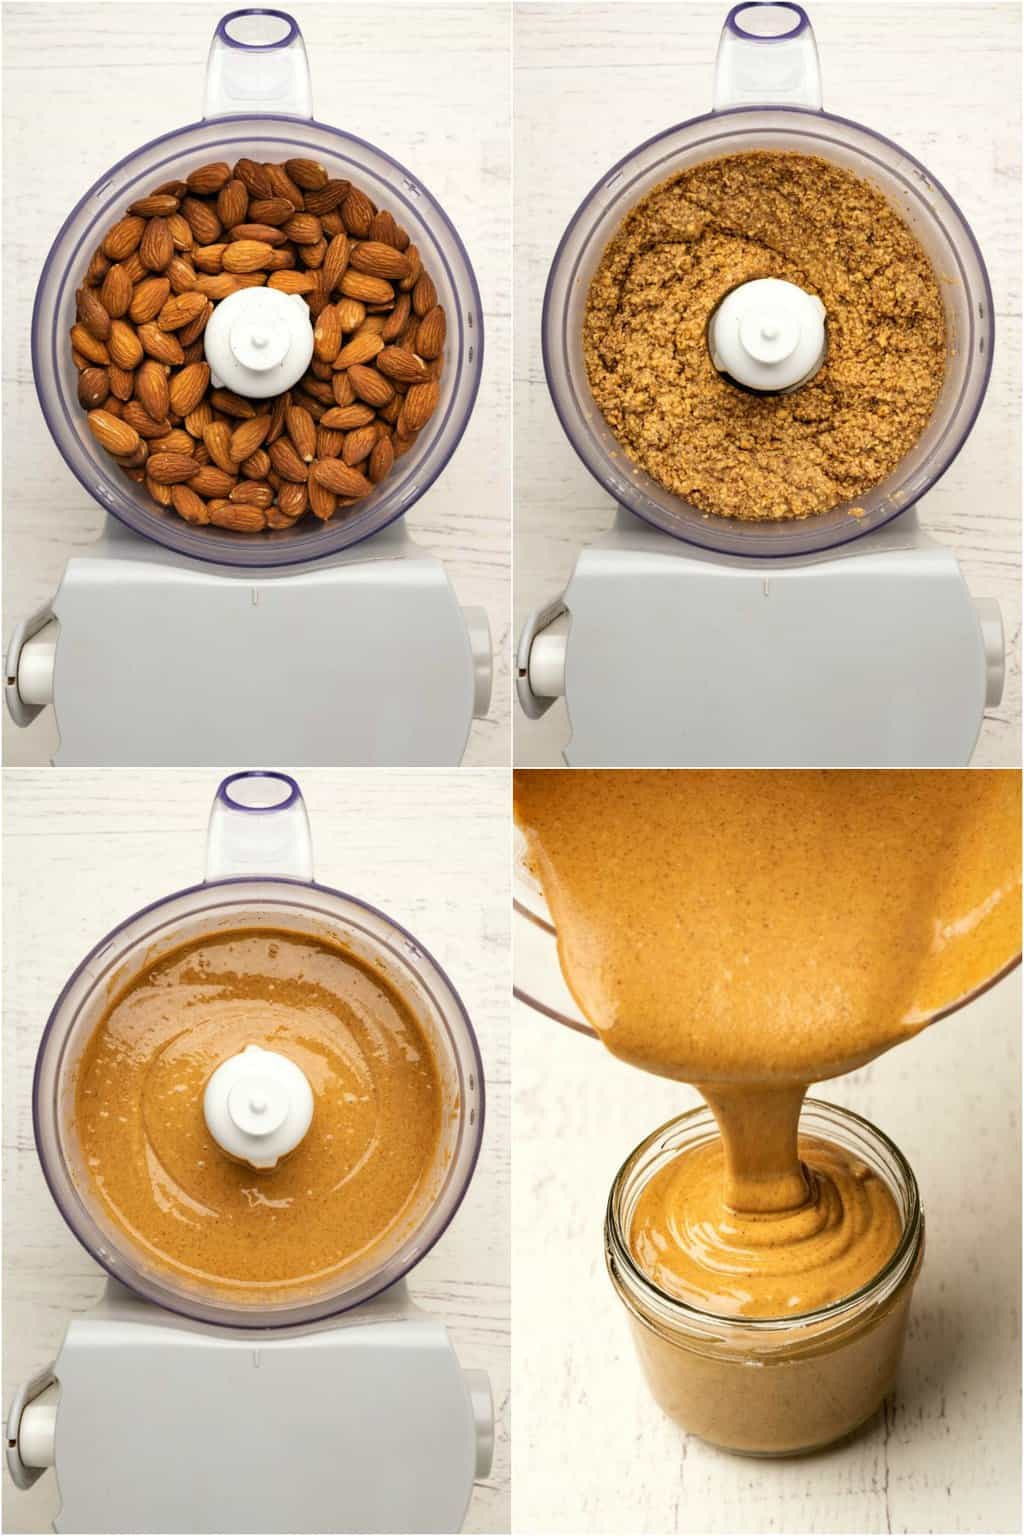 Step by step process photo collage of making almond butter.